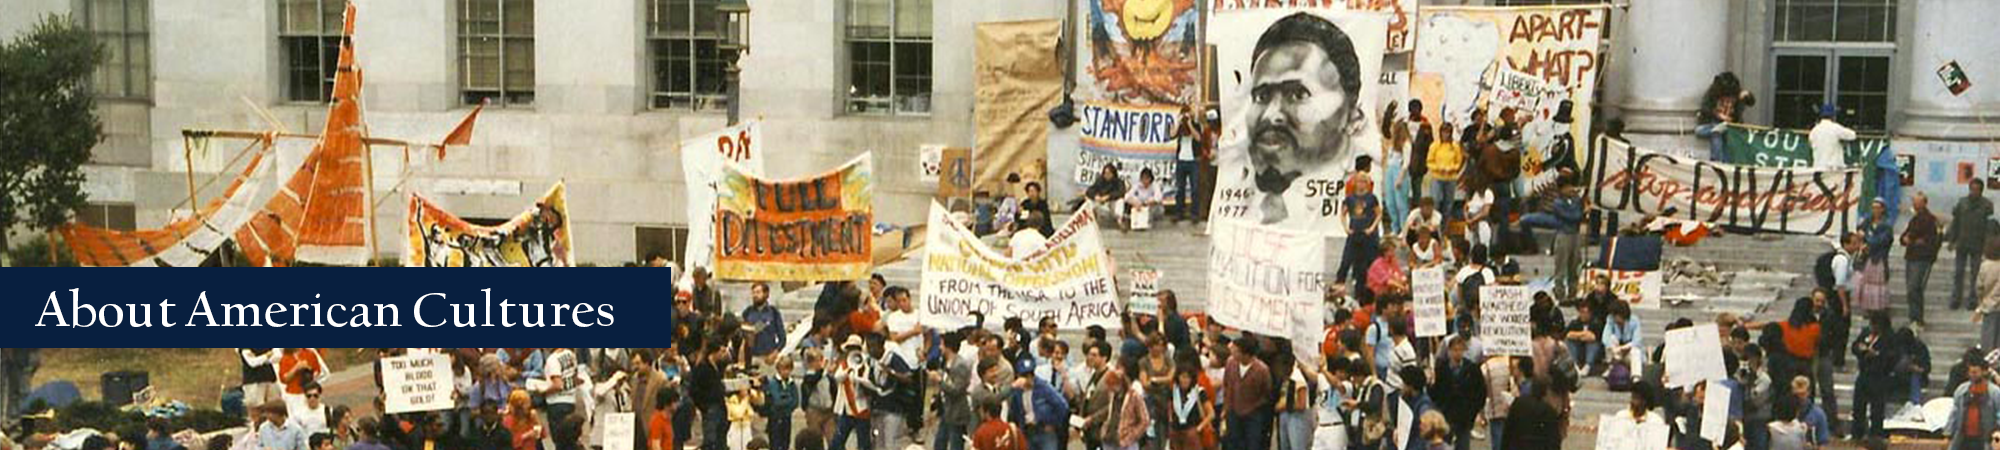 About American Cultures Banner featuring university students protesting the South African apartheid at Sproul Plaza